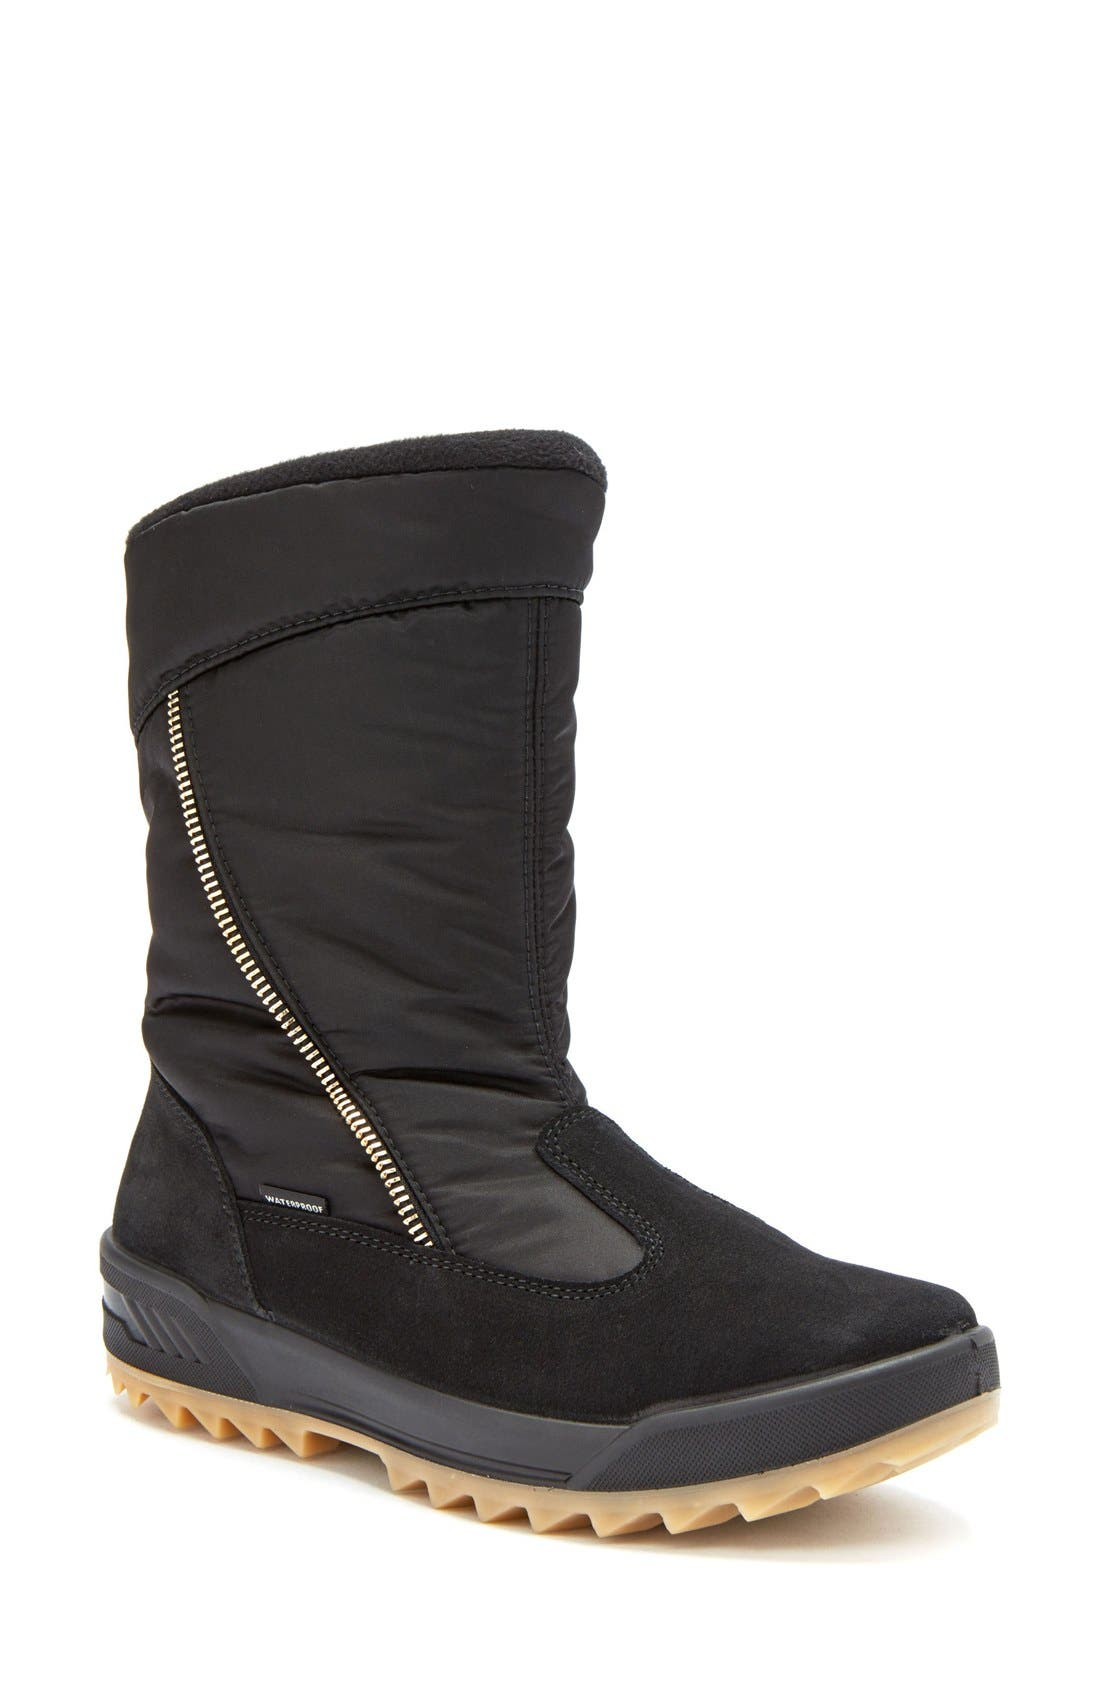 Iceland Waterproof Snow Boot,                             Alternate thumbnail 4, color,                             Black Multi Fabric